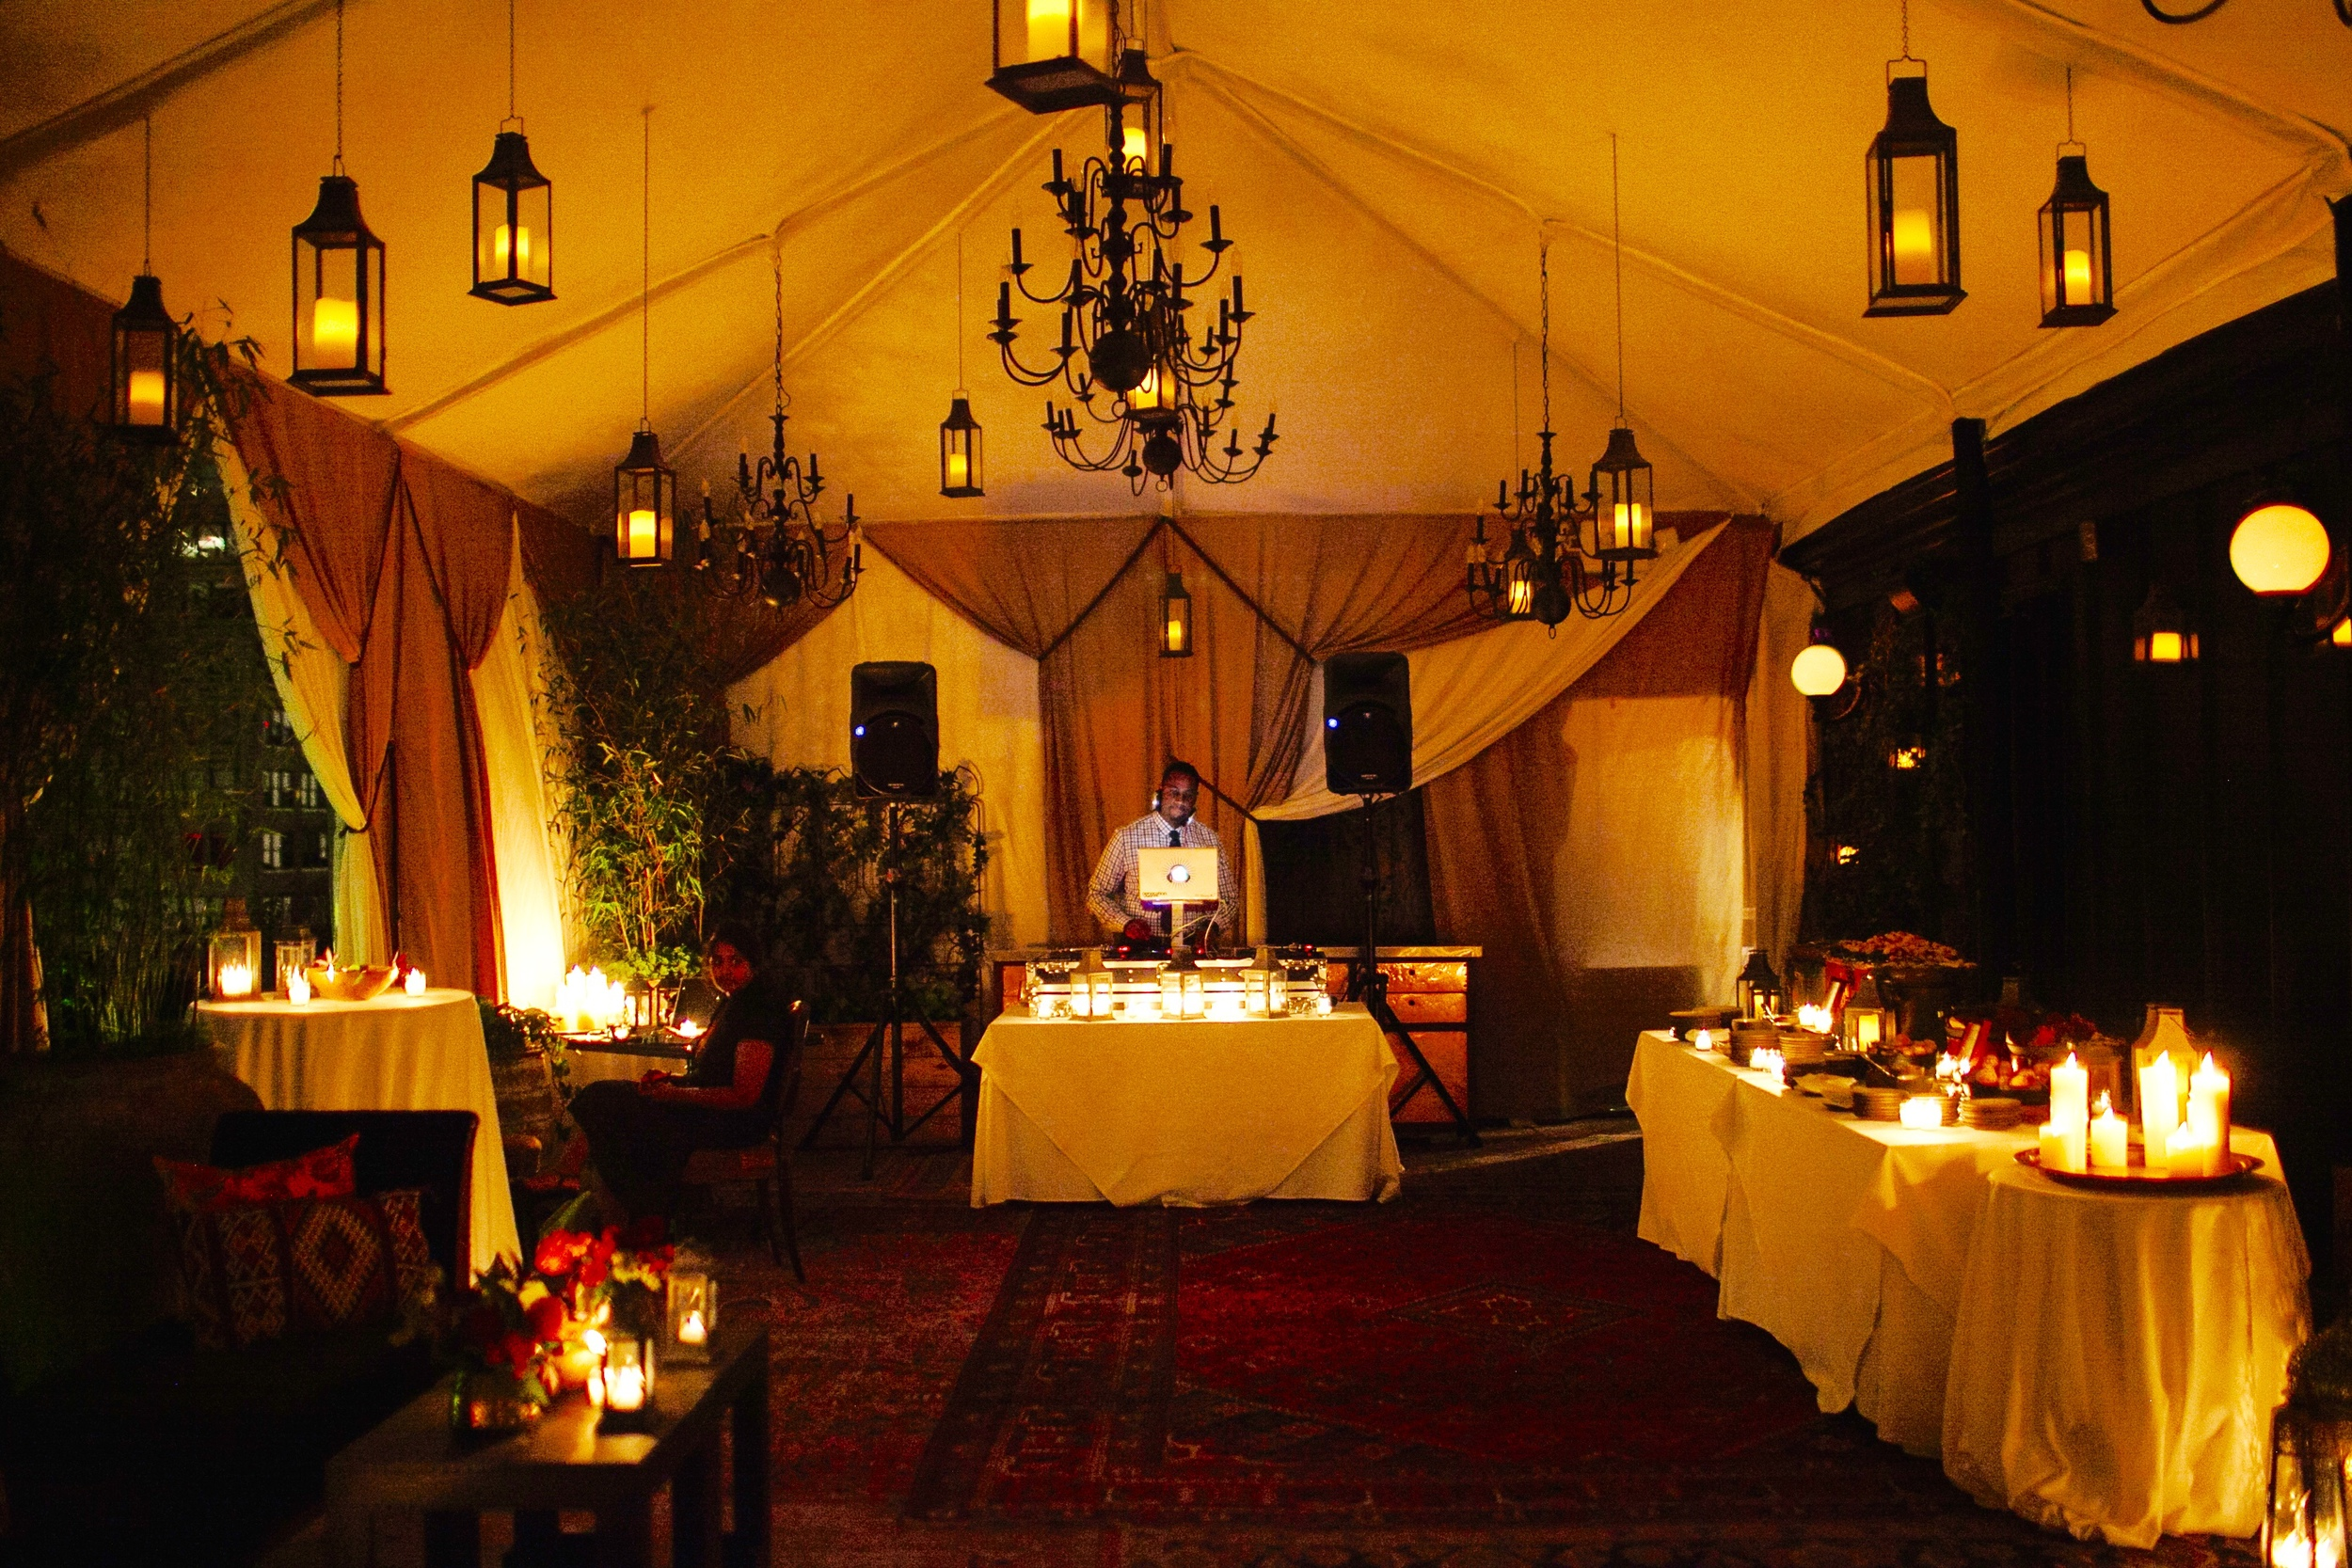 TENT LIT ONLY BY CANDLELIGHT